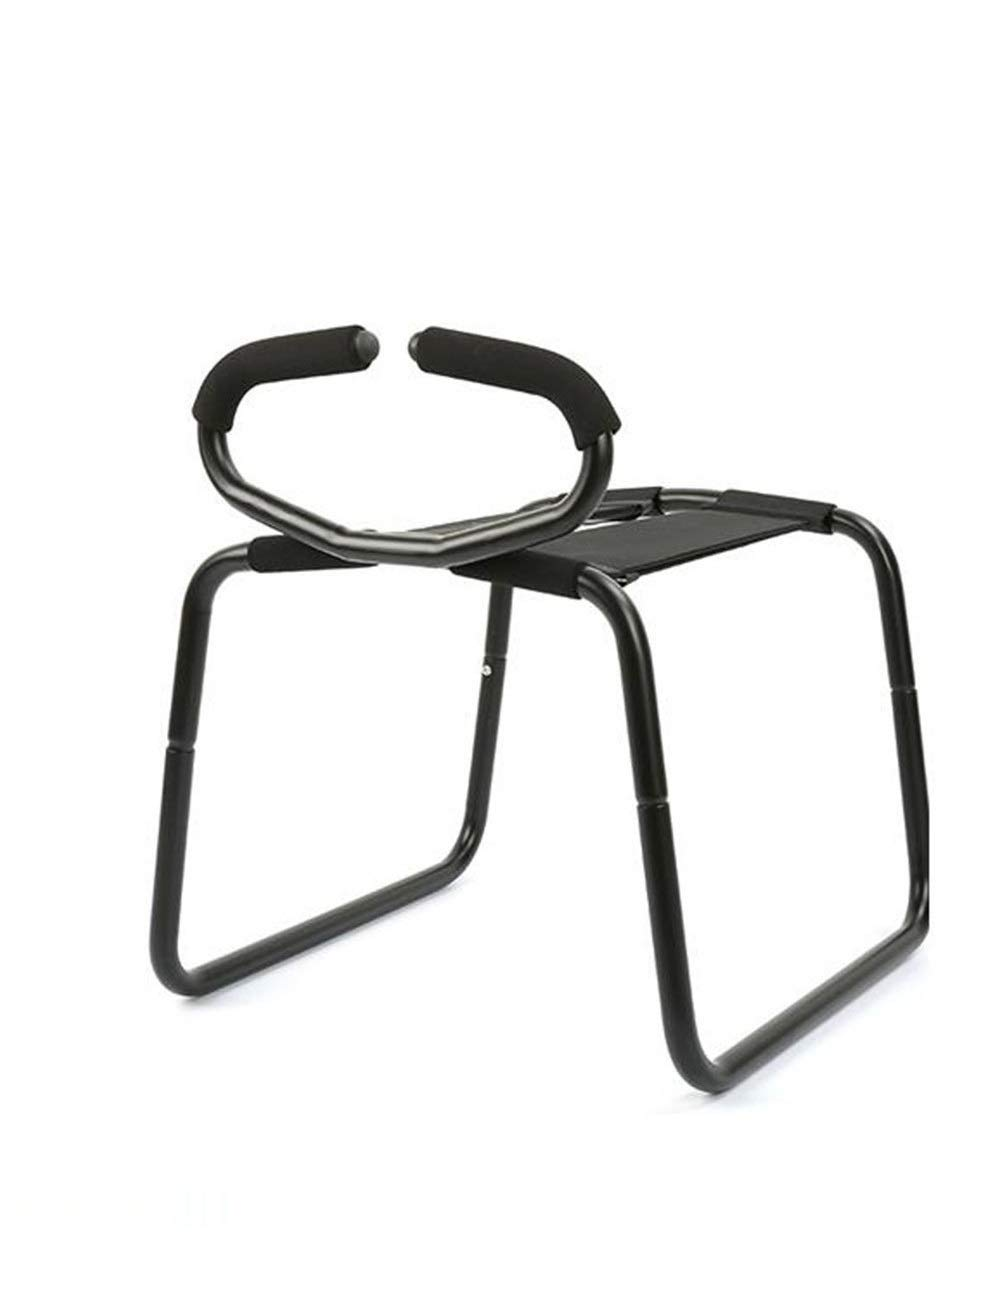 Multifunction Sèx Position Enhancer Chair Novelty Toy with Handrail for Couples